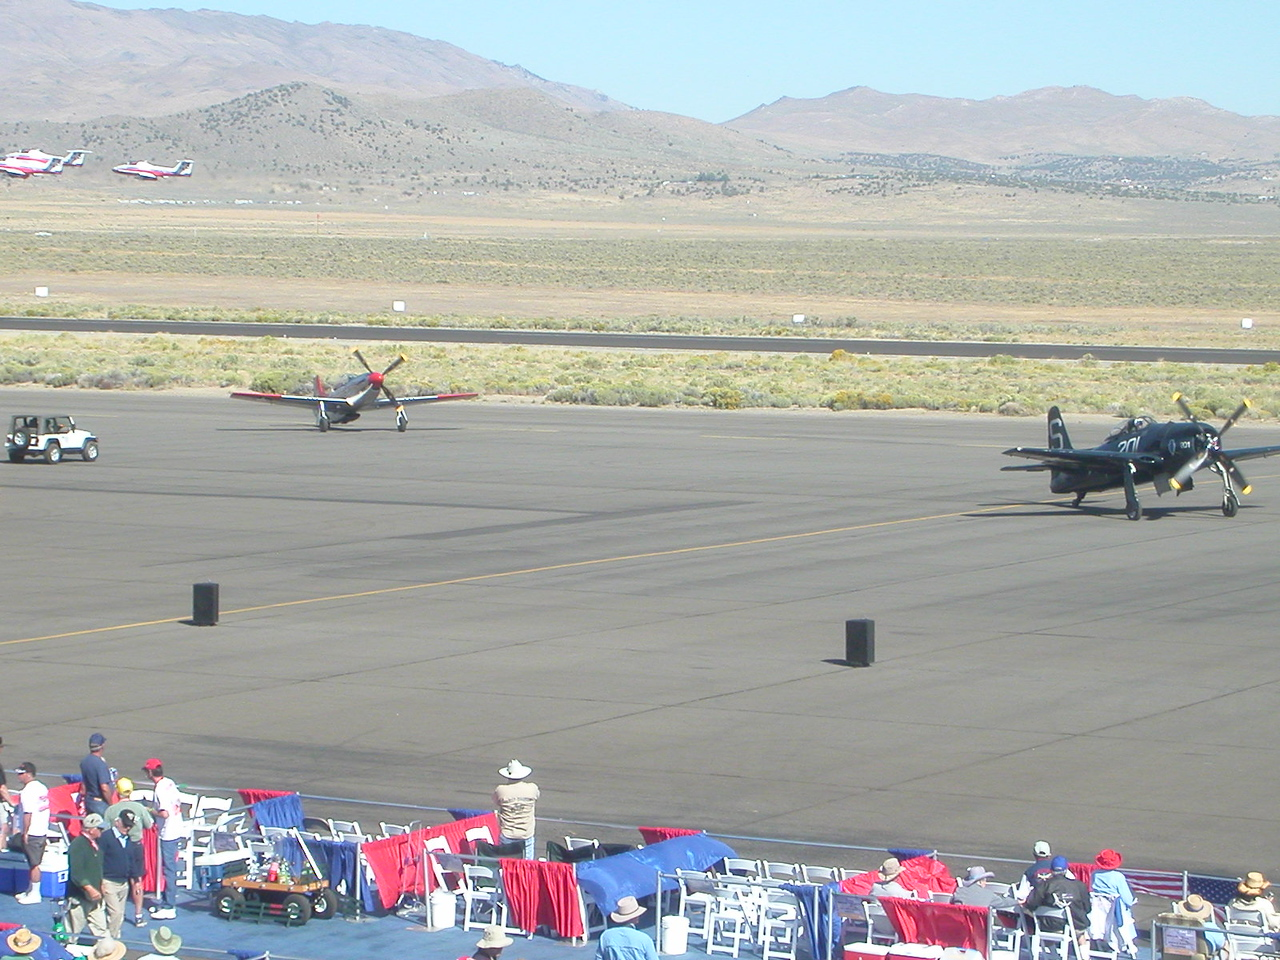 Look closely, jets flying too on the upper left corner. Corsair and Mustang. If you get a chance the Reno air show is a majestic display of aviation. The sounds are fantastic too.